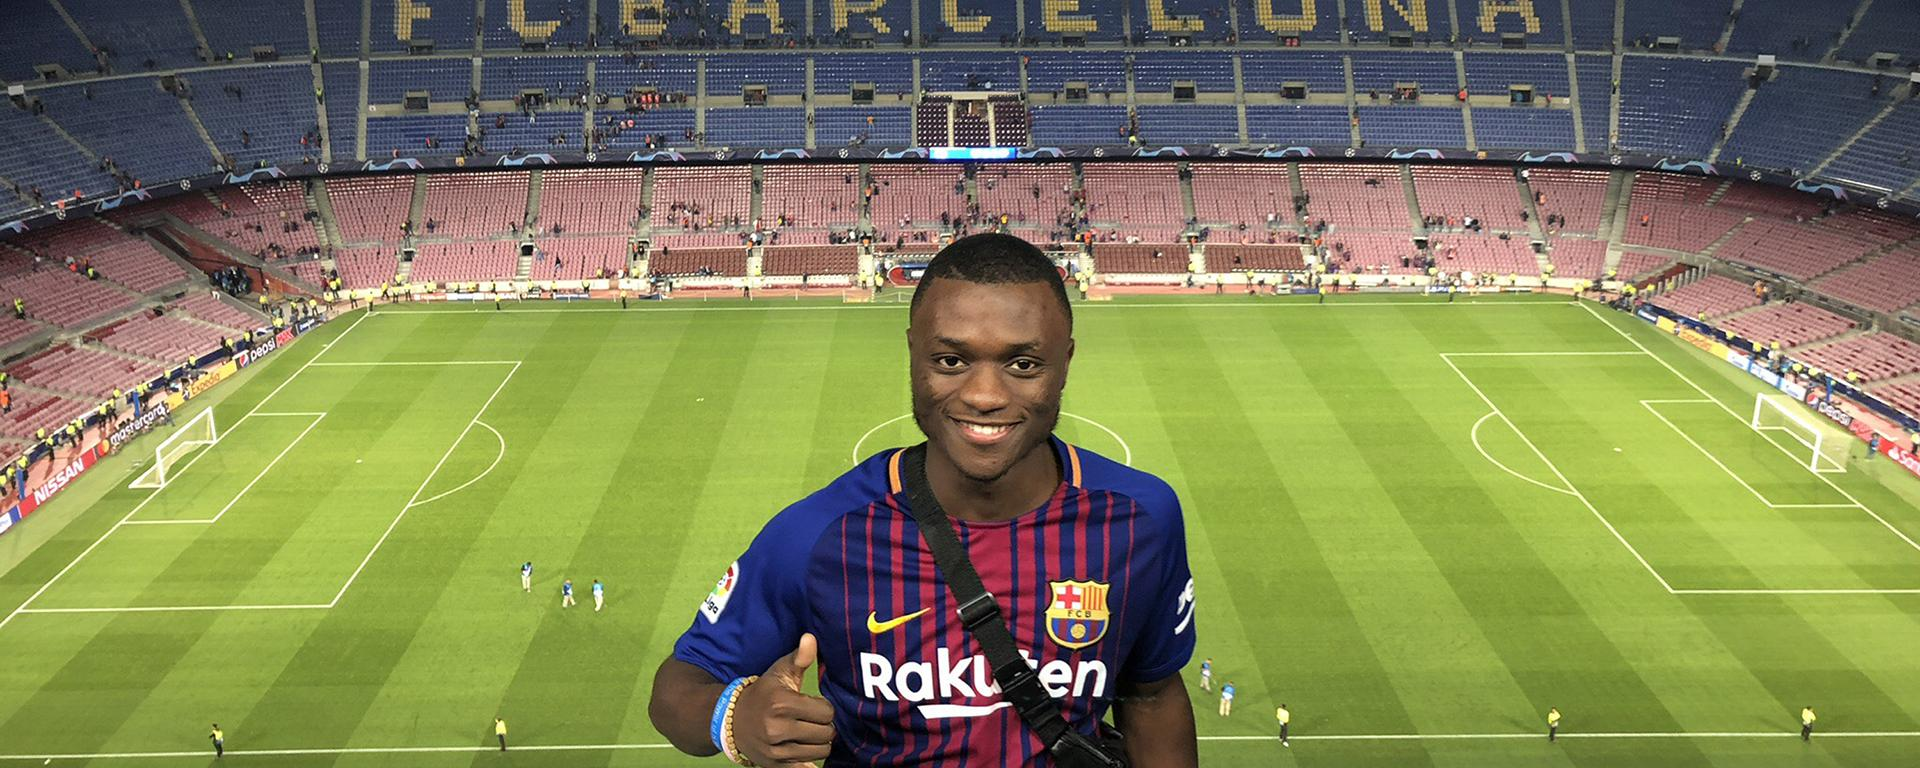 Nyezee Goe enjoying an FC Barcelona game